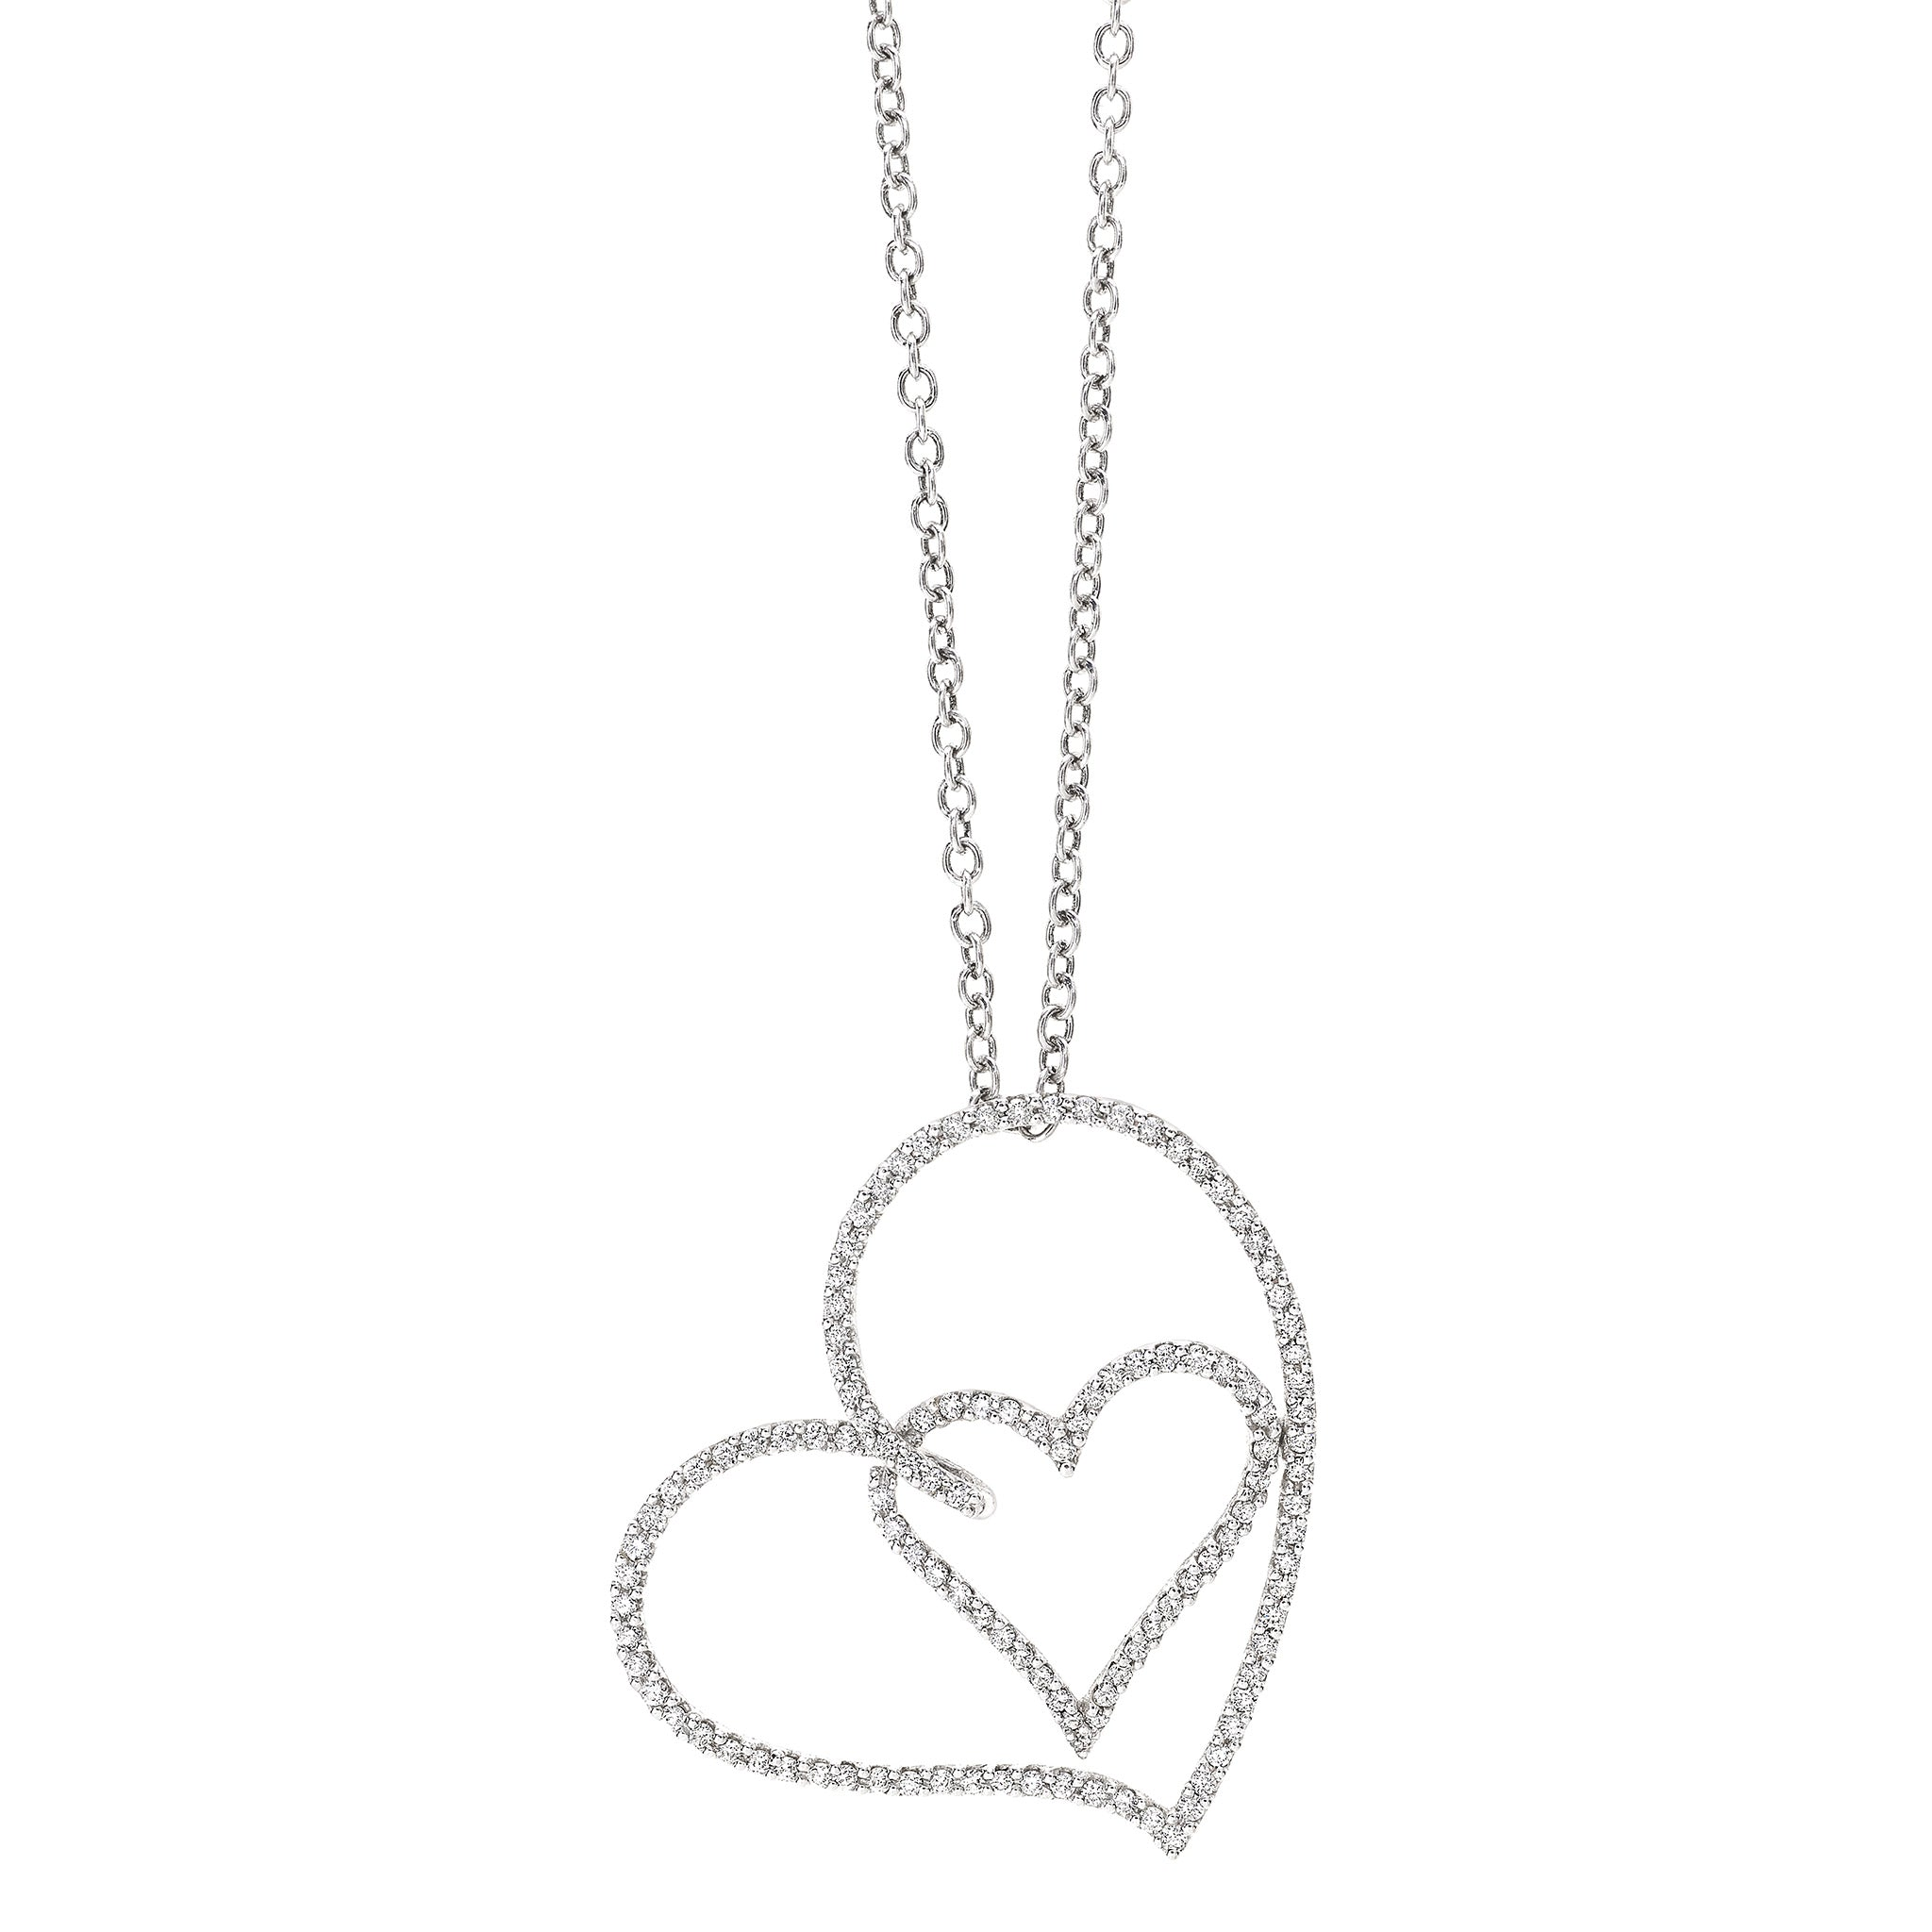 HEART Pendant Necklace by GIANNI LAZZARO